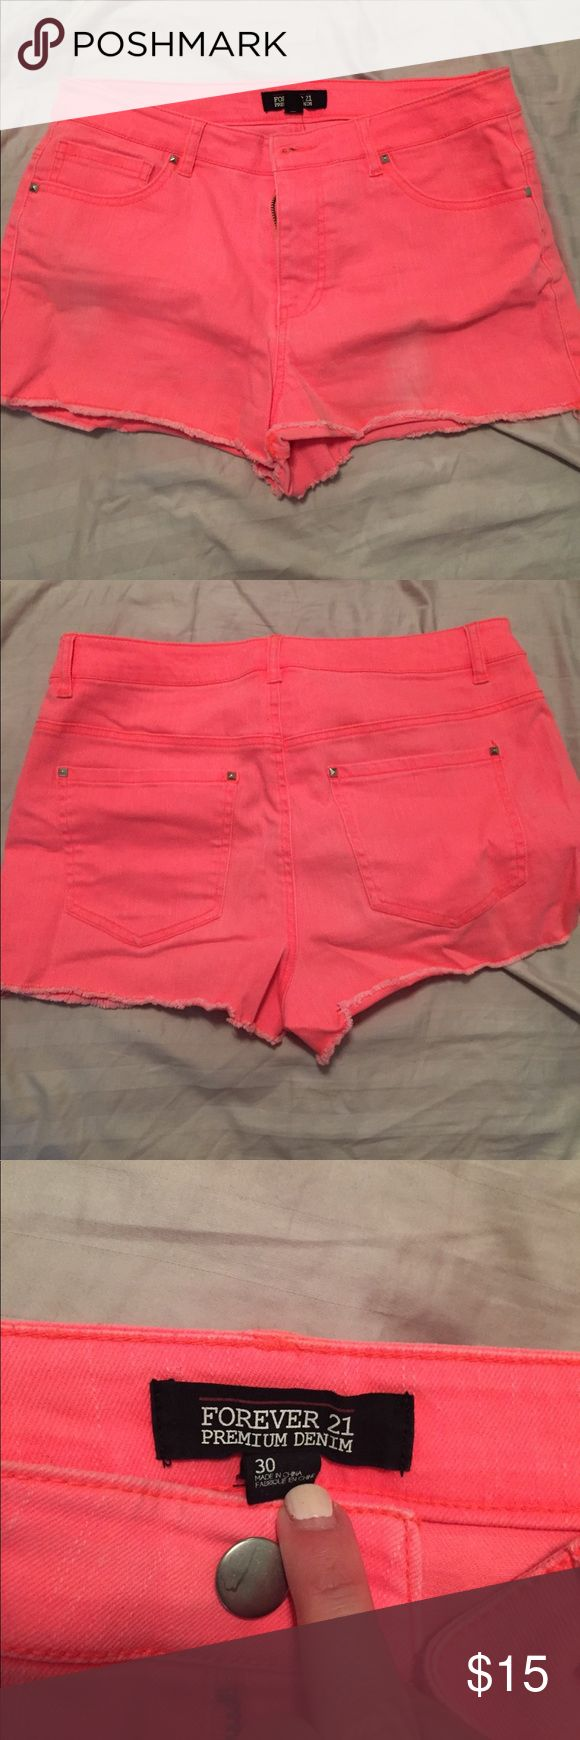 Forever 21 distressed coral Jean shorts Forever 21 distressed Coral Jean shorts size 30 Forever 21 Shorts Jean Shorts